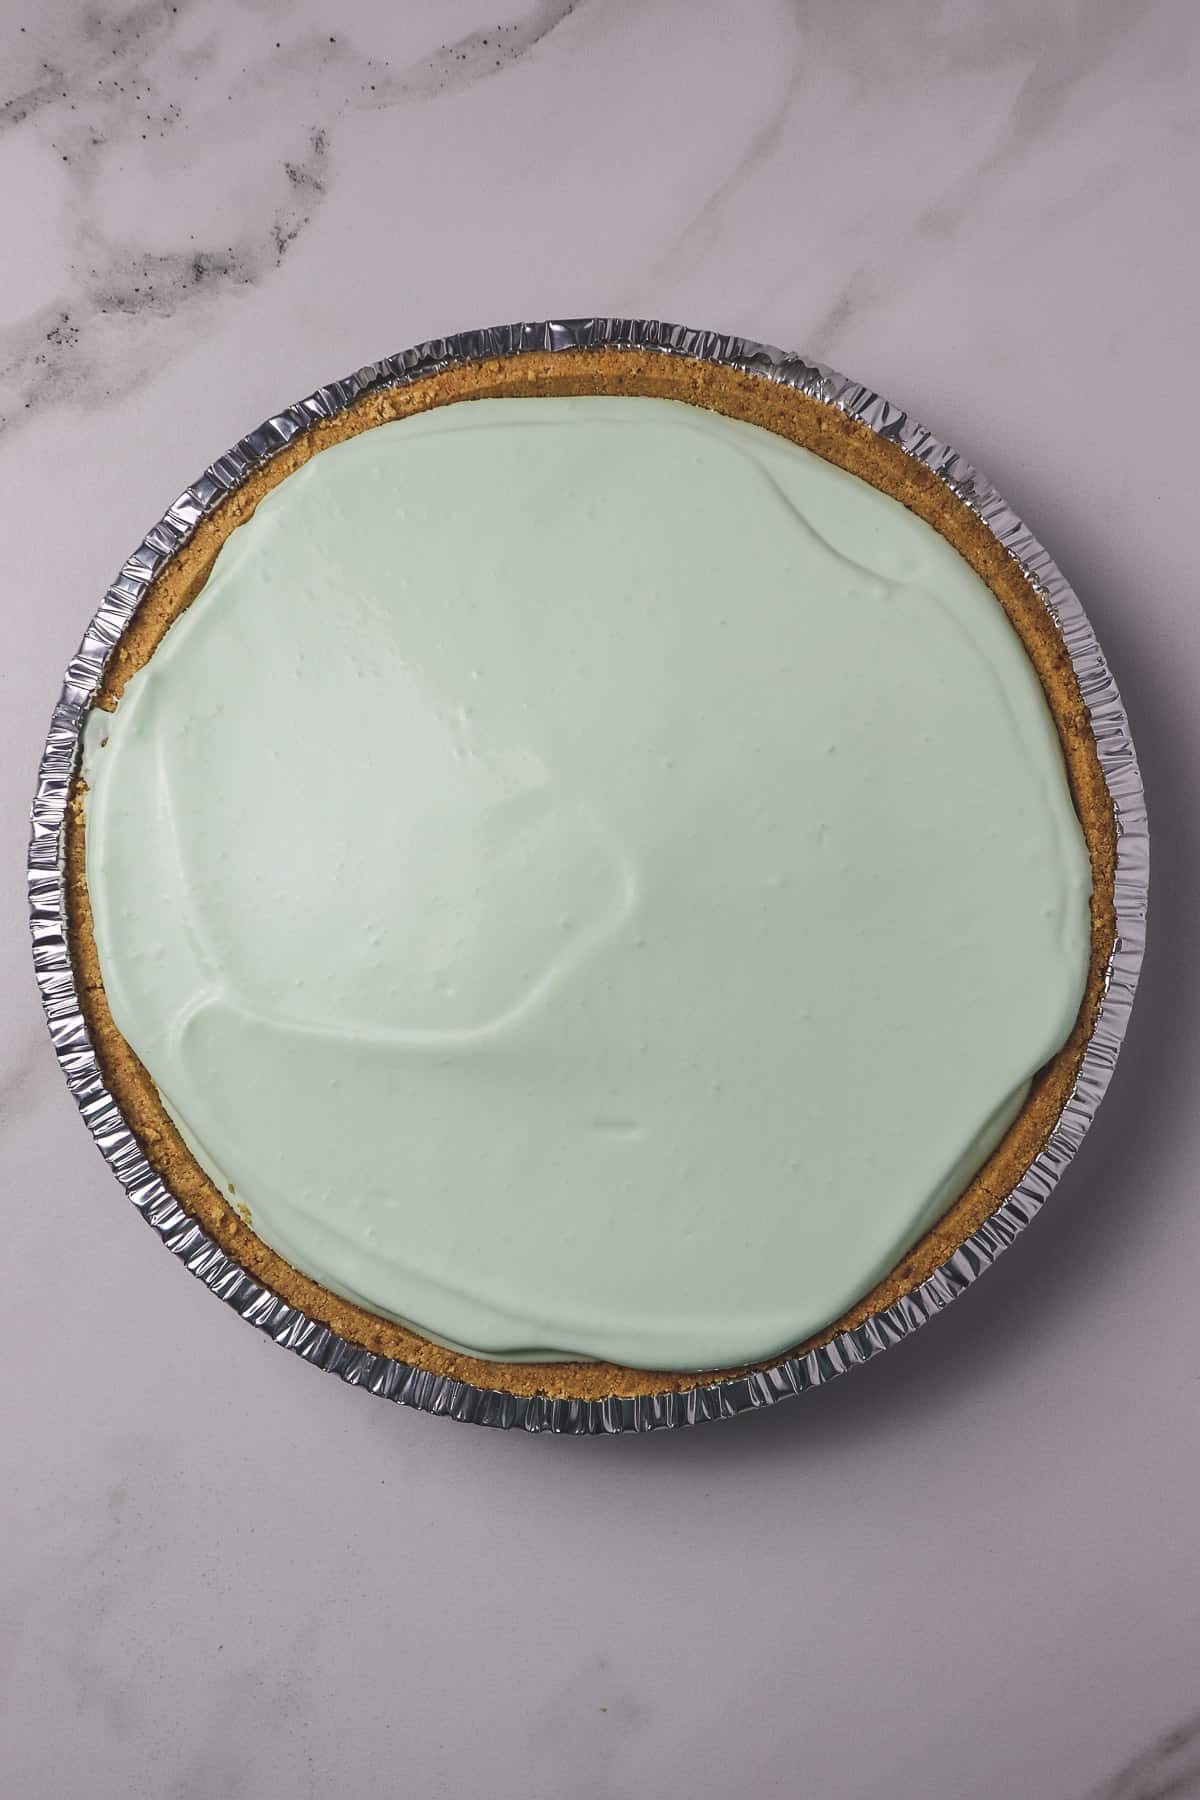 finished no-bake skinny key lime pie